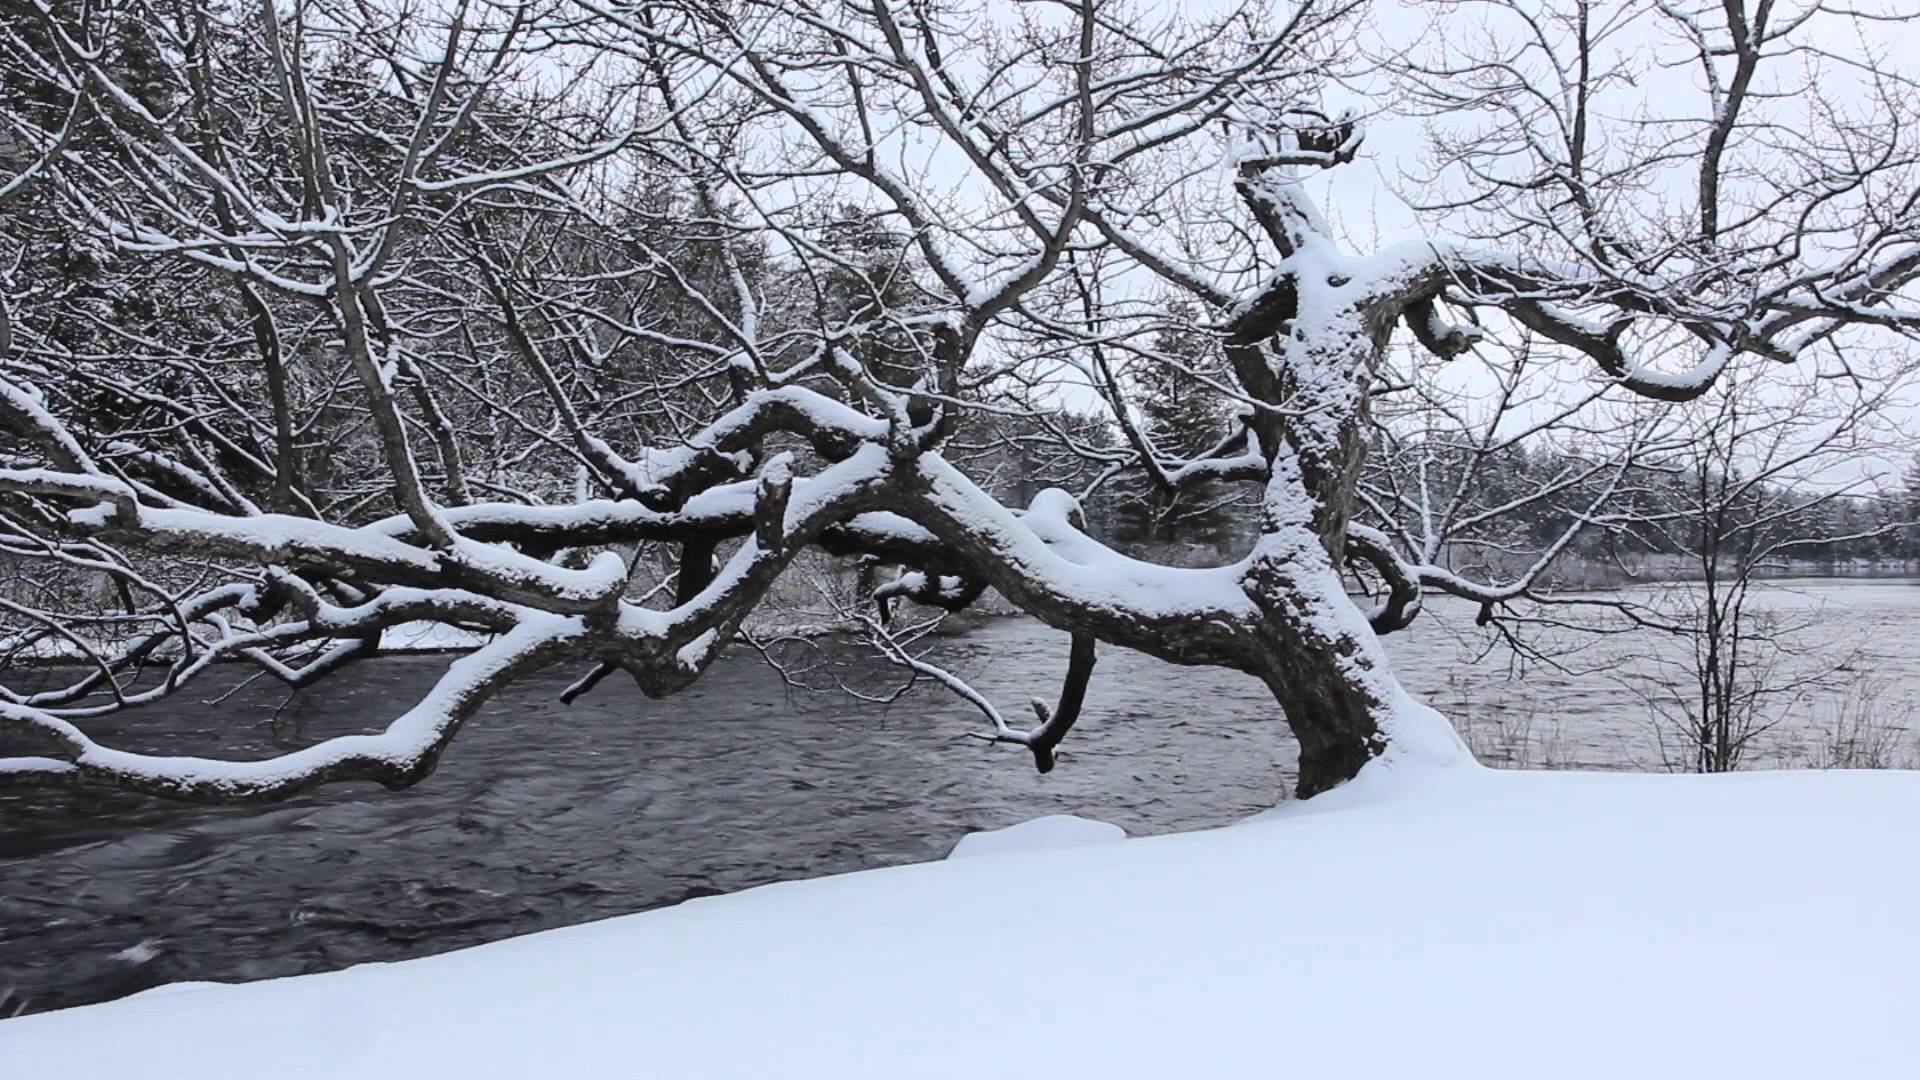 Snowfall, Winter Tree and River Flowing - 1 hr Soundscape, Relaxing ...